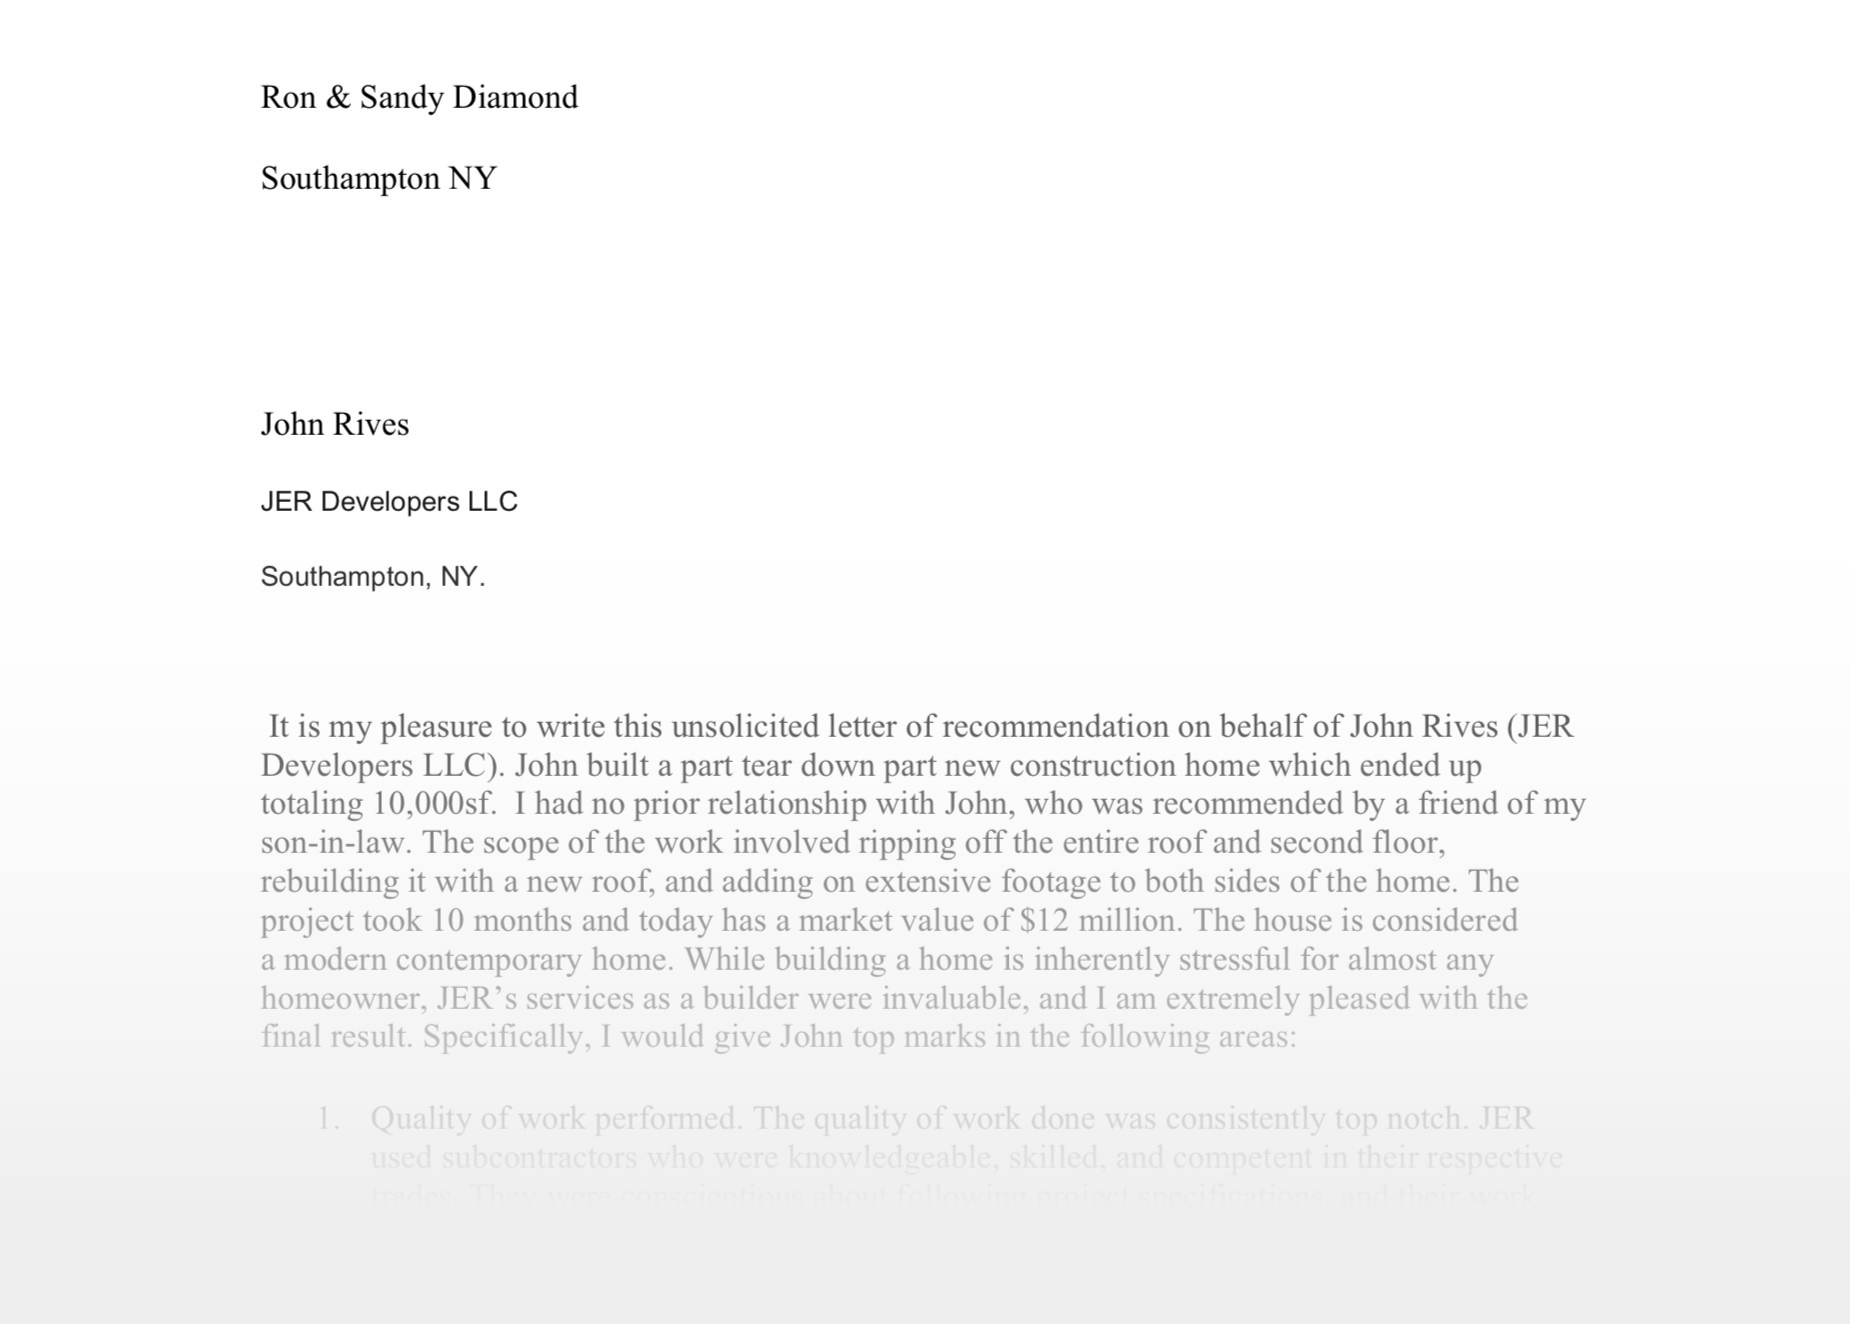 Recommendation Letter from Ron and Sandy Diamond.